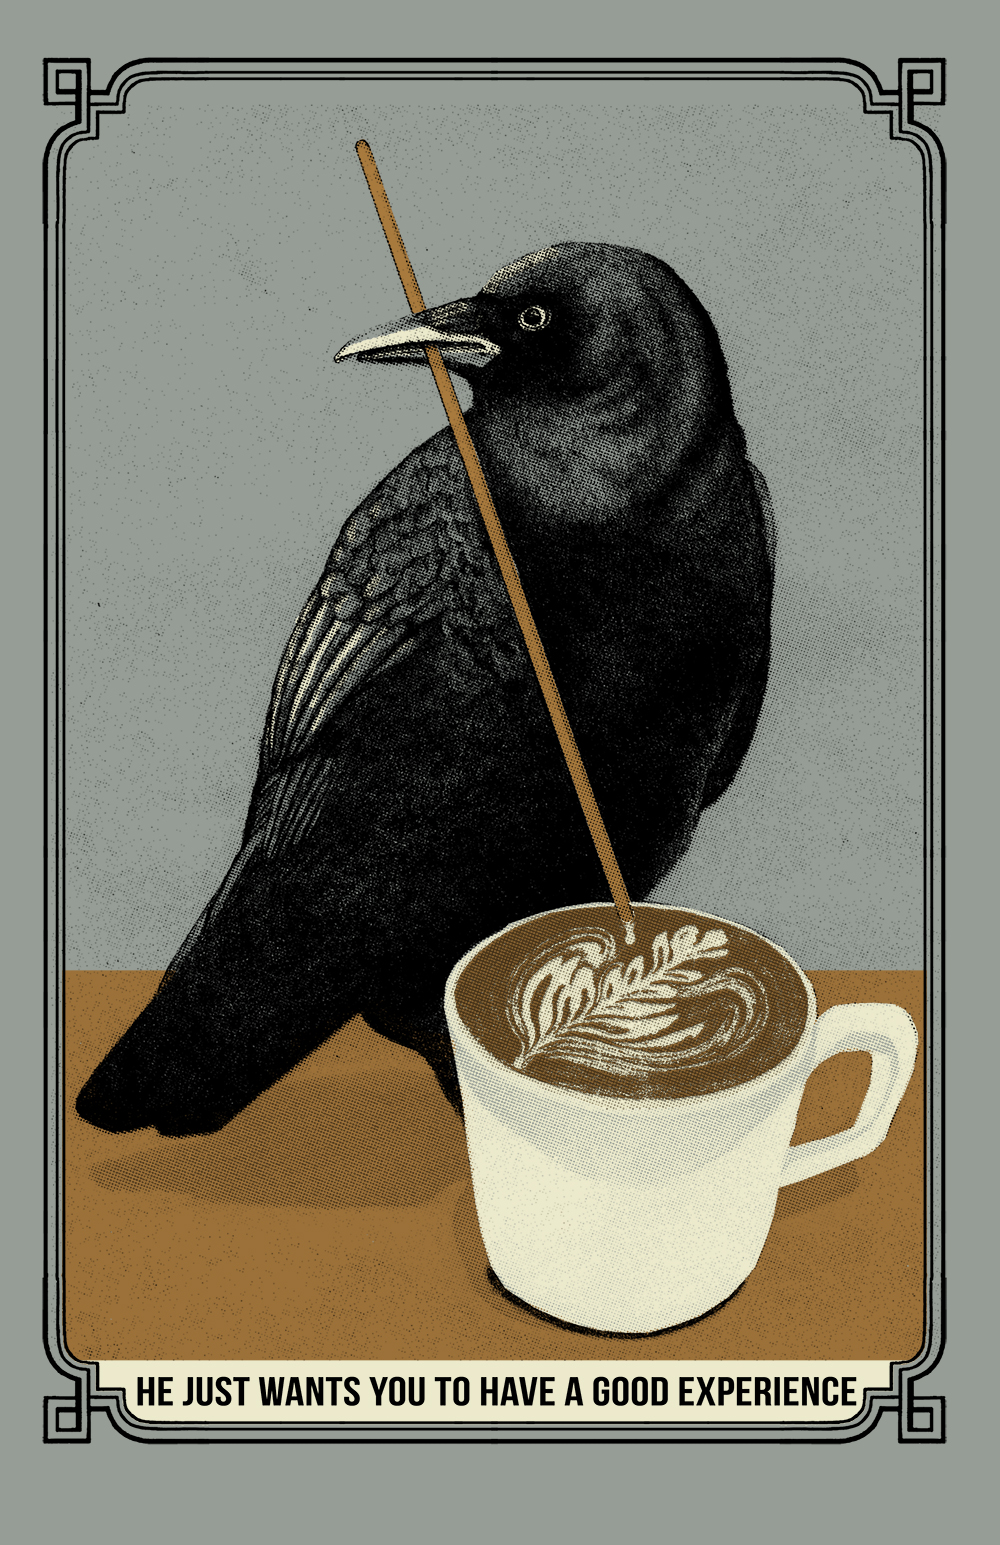 1-crow coffee.jpg